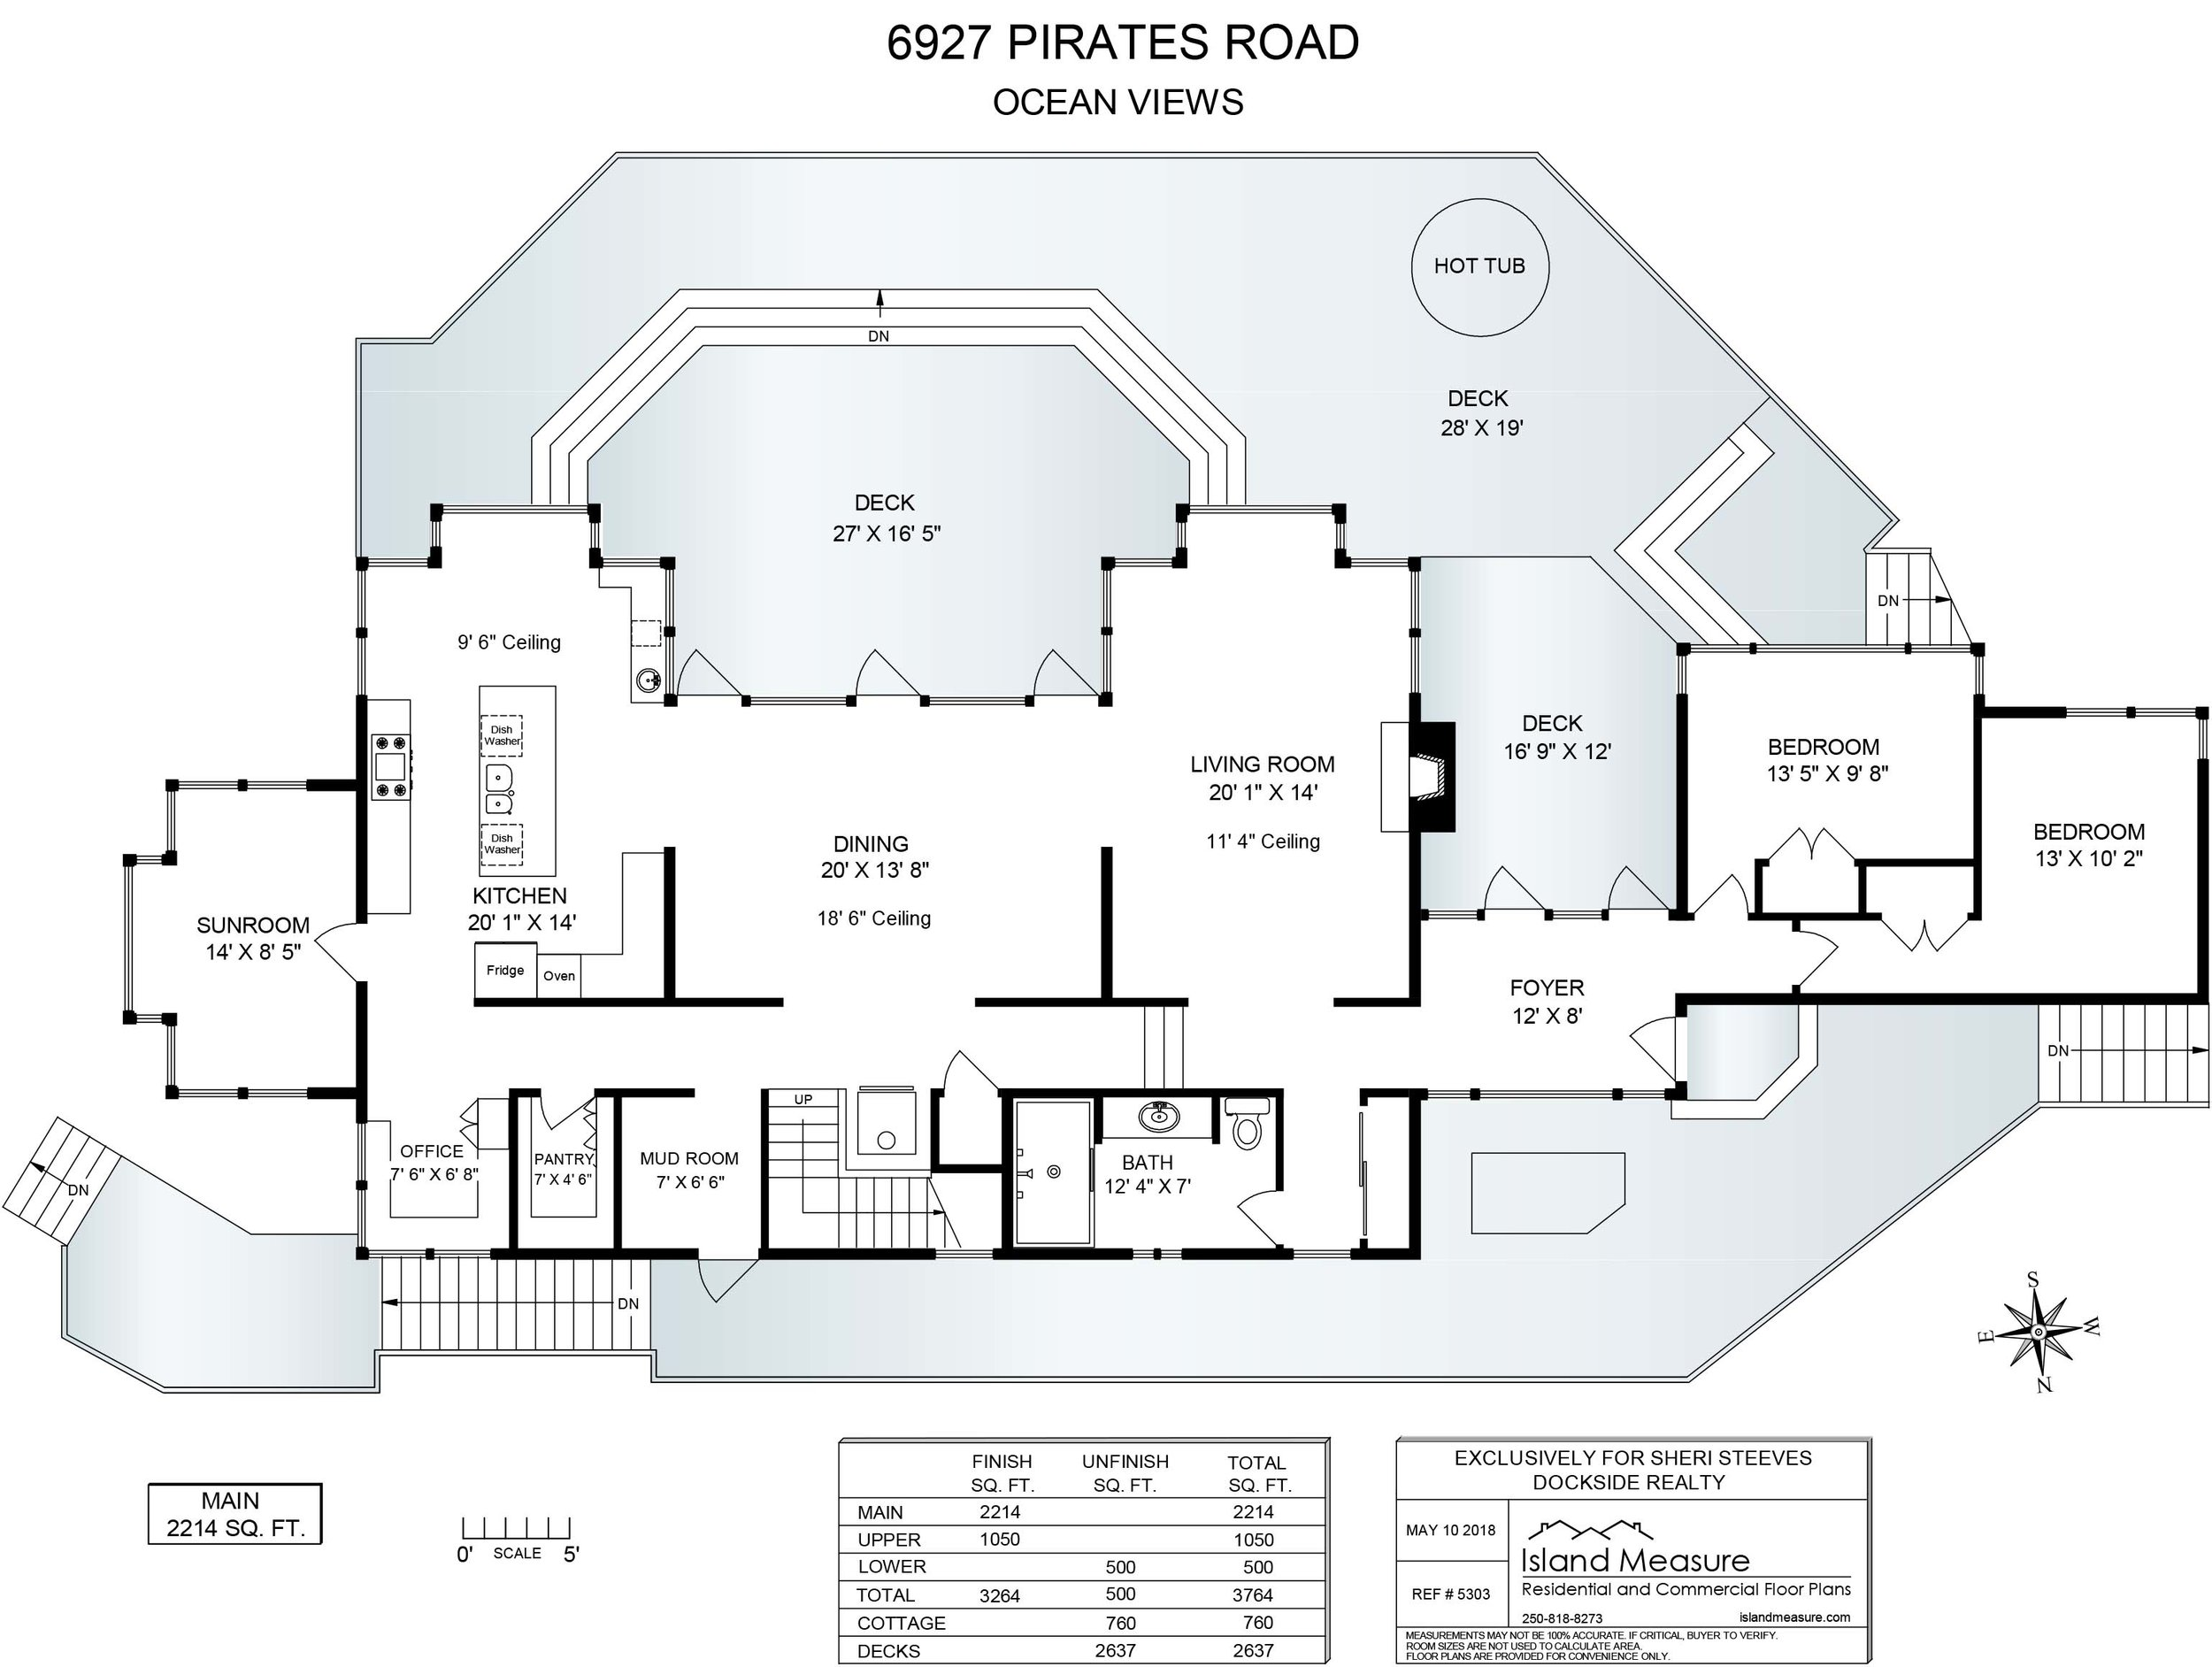 6927 Pirates Road Main.jpg